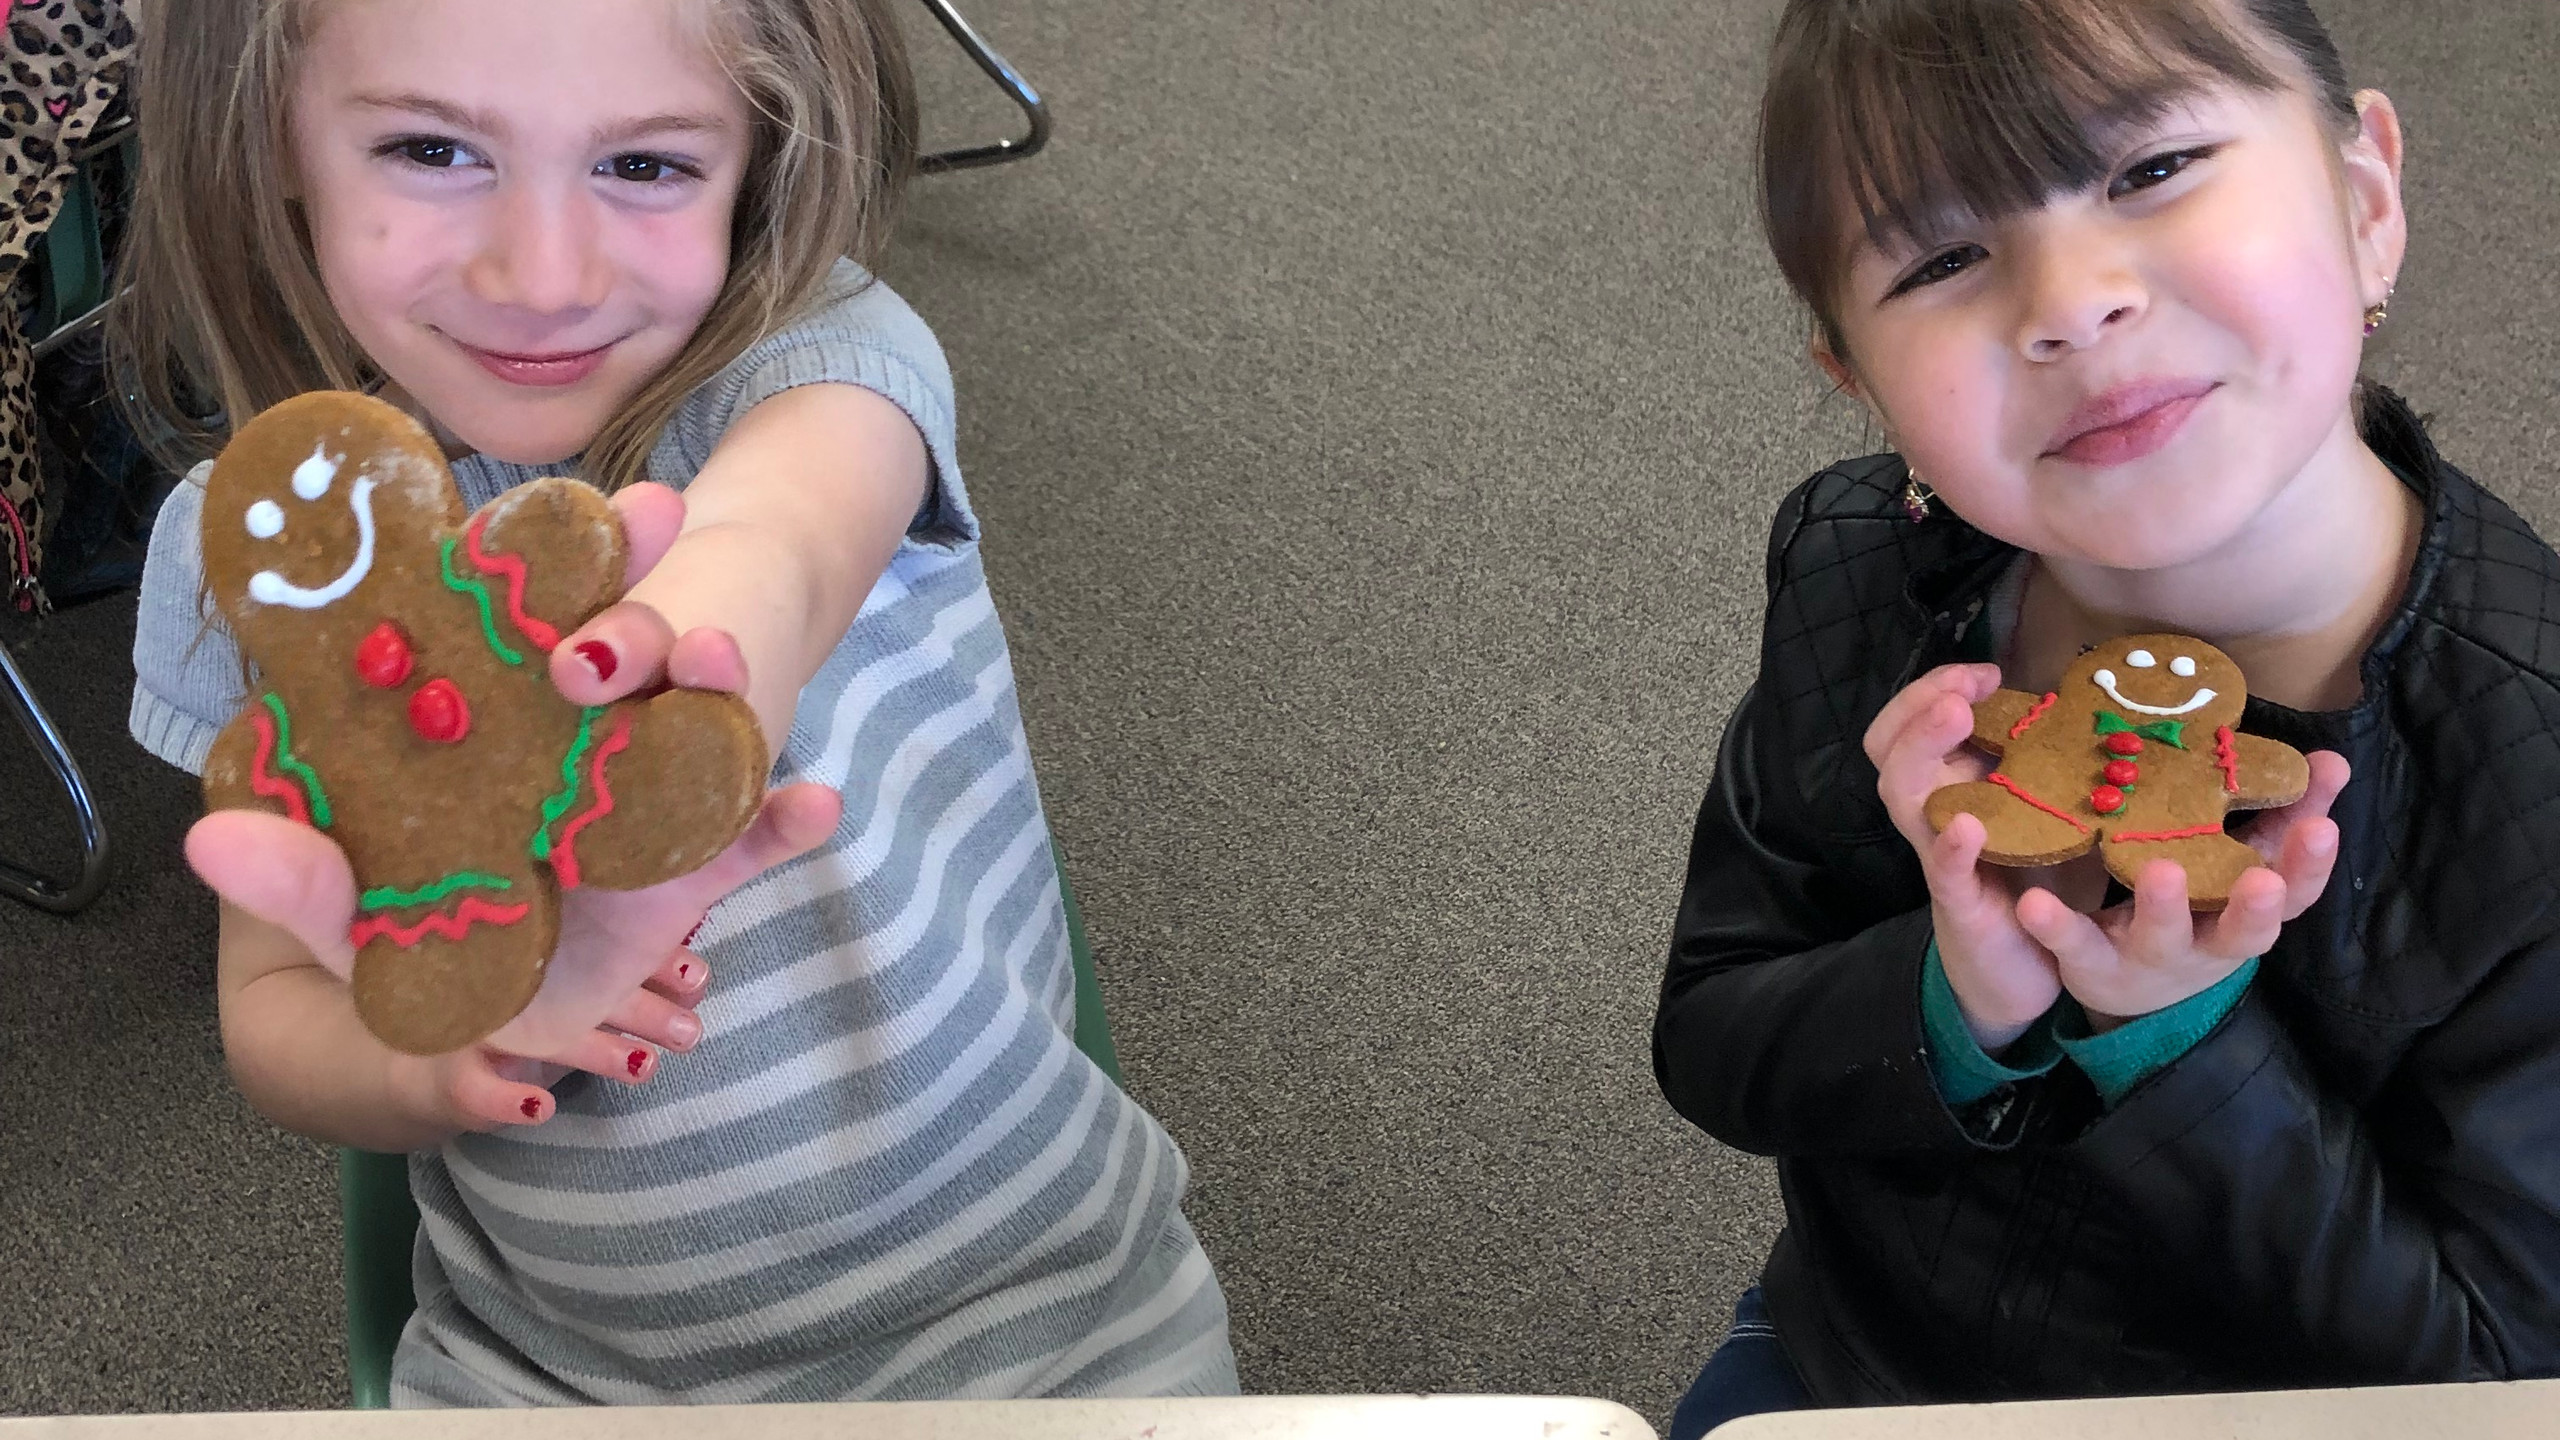 All smiles in this kindergarten class as they take their gingerbread man treat.